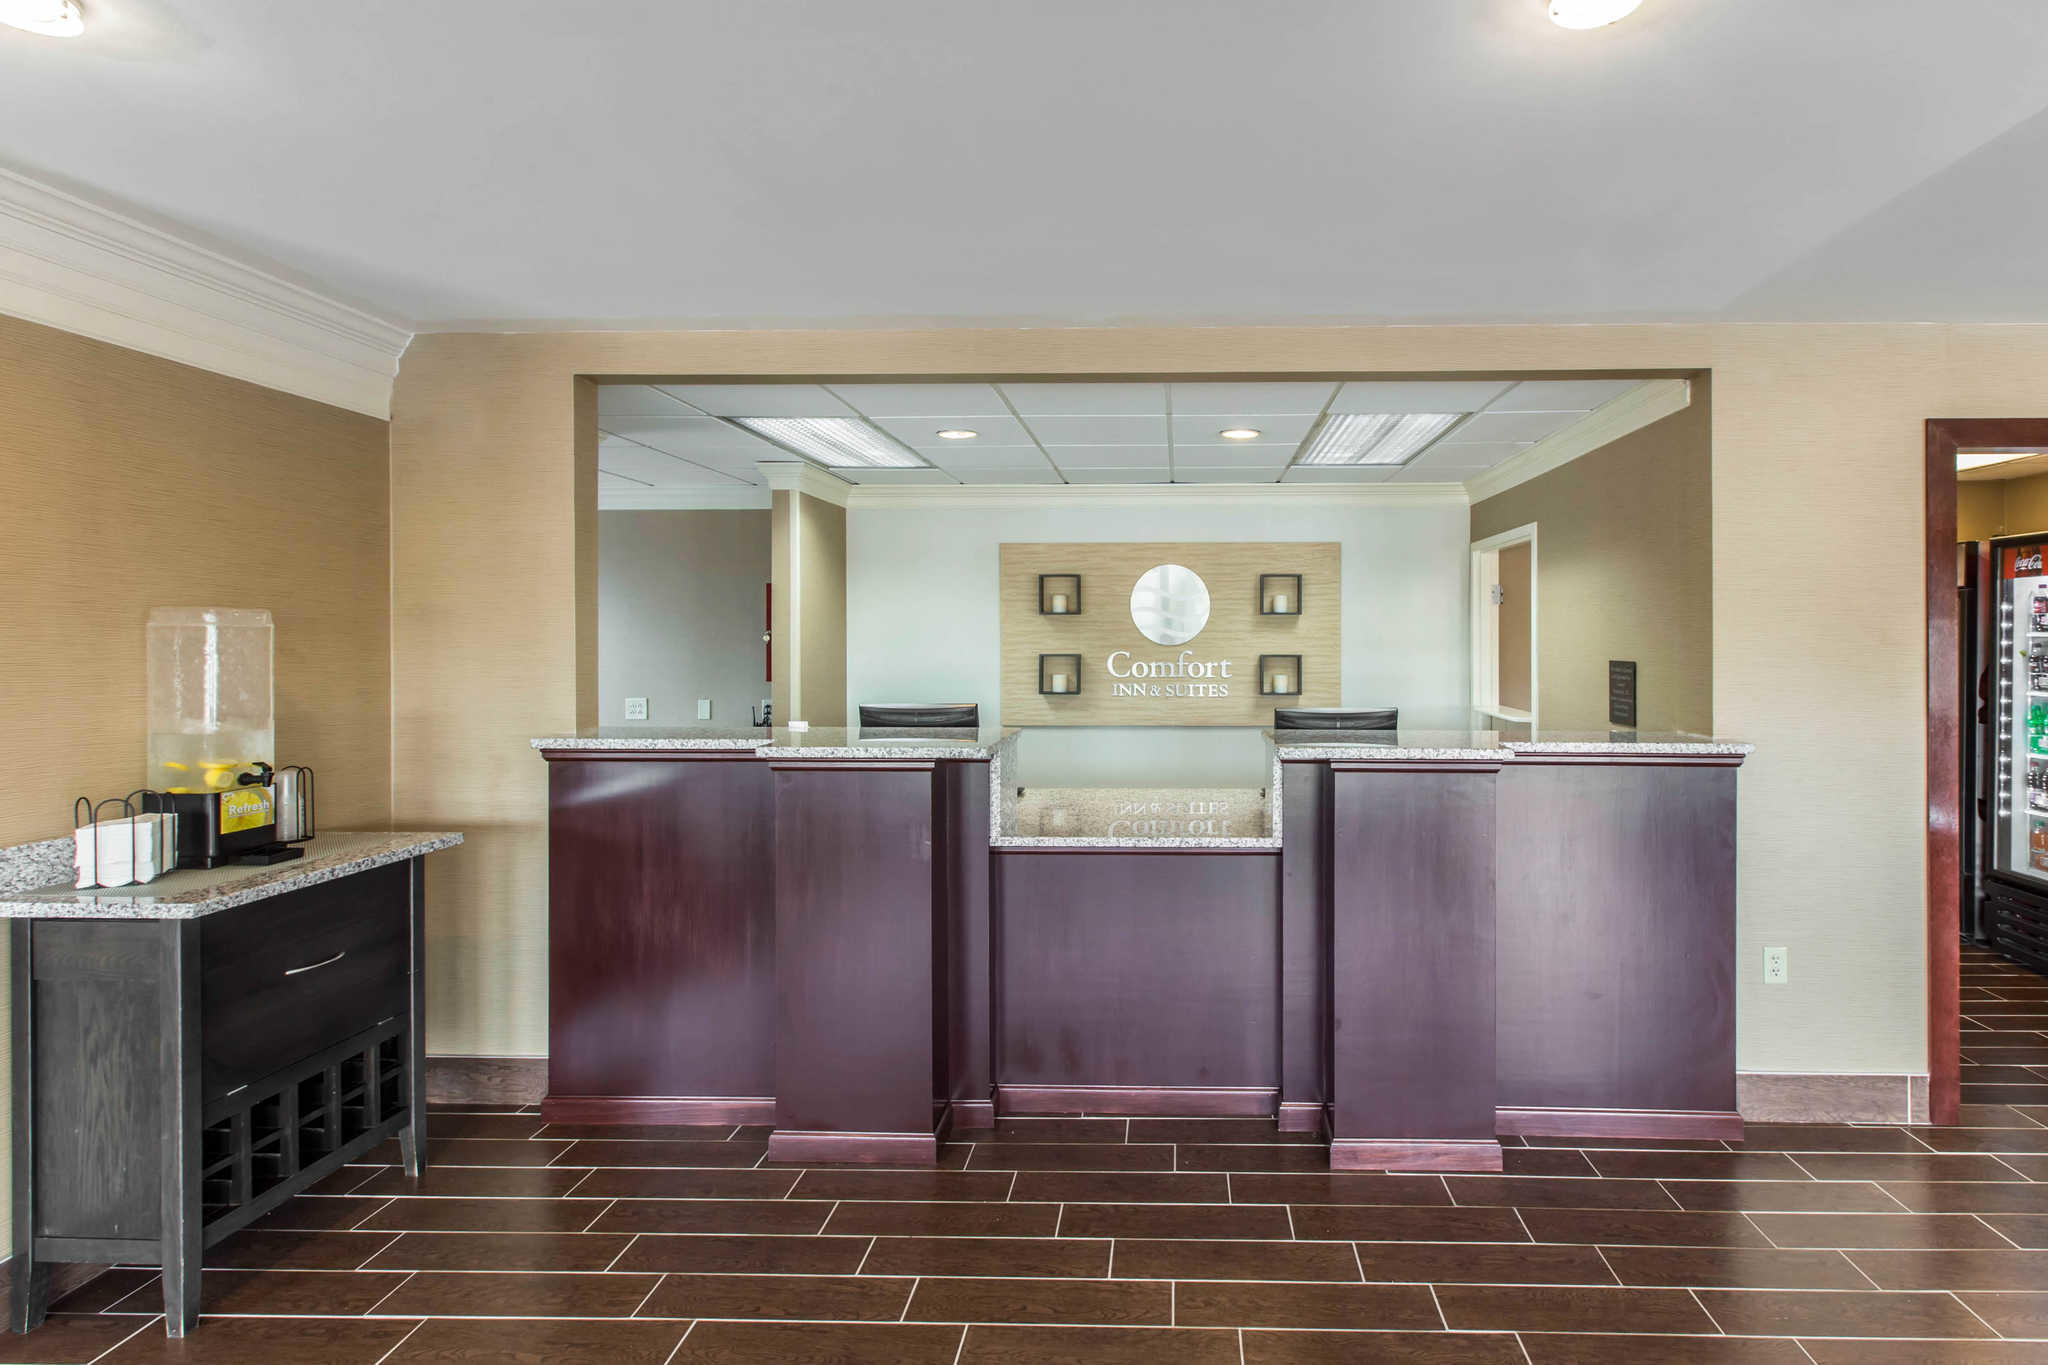 fort Inn Suites Knoxville West Kingston Pike Knoxville